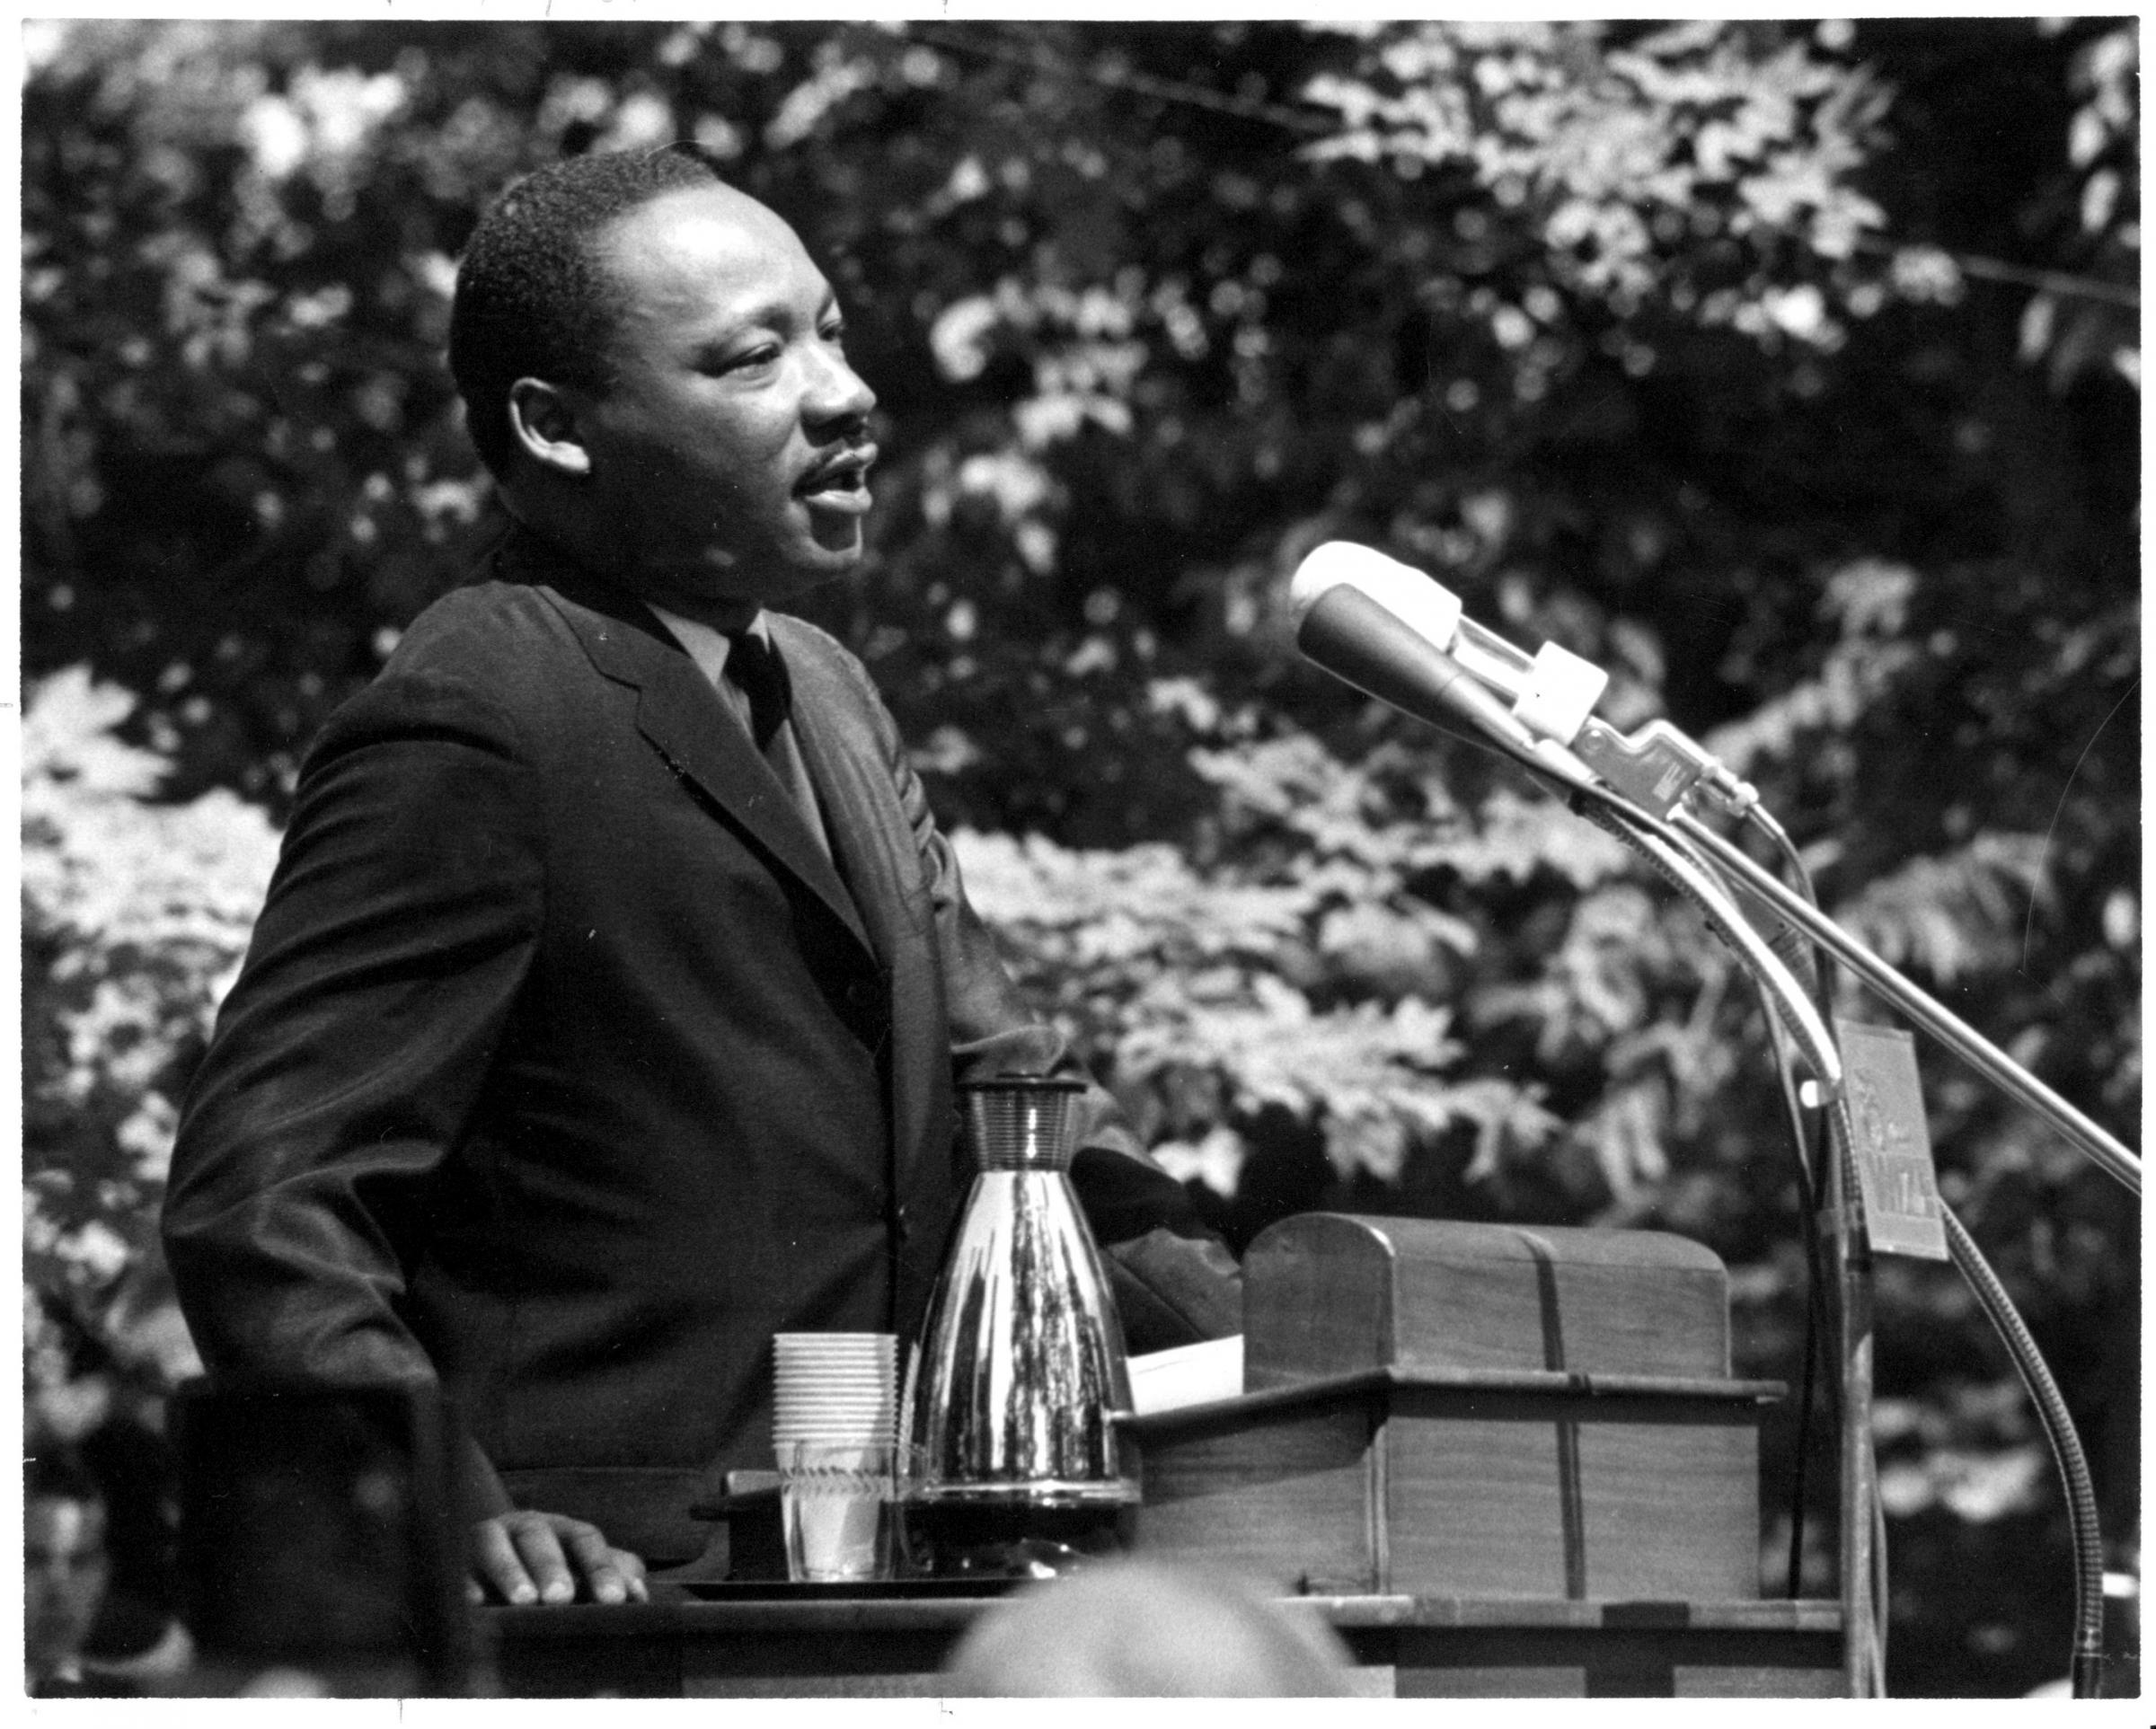 Listing Mlk Day Events Around The Miami Valley